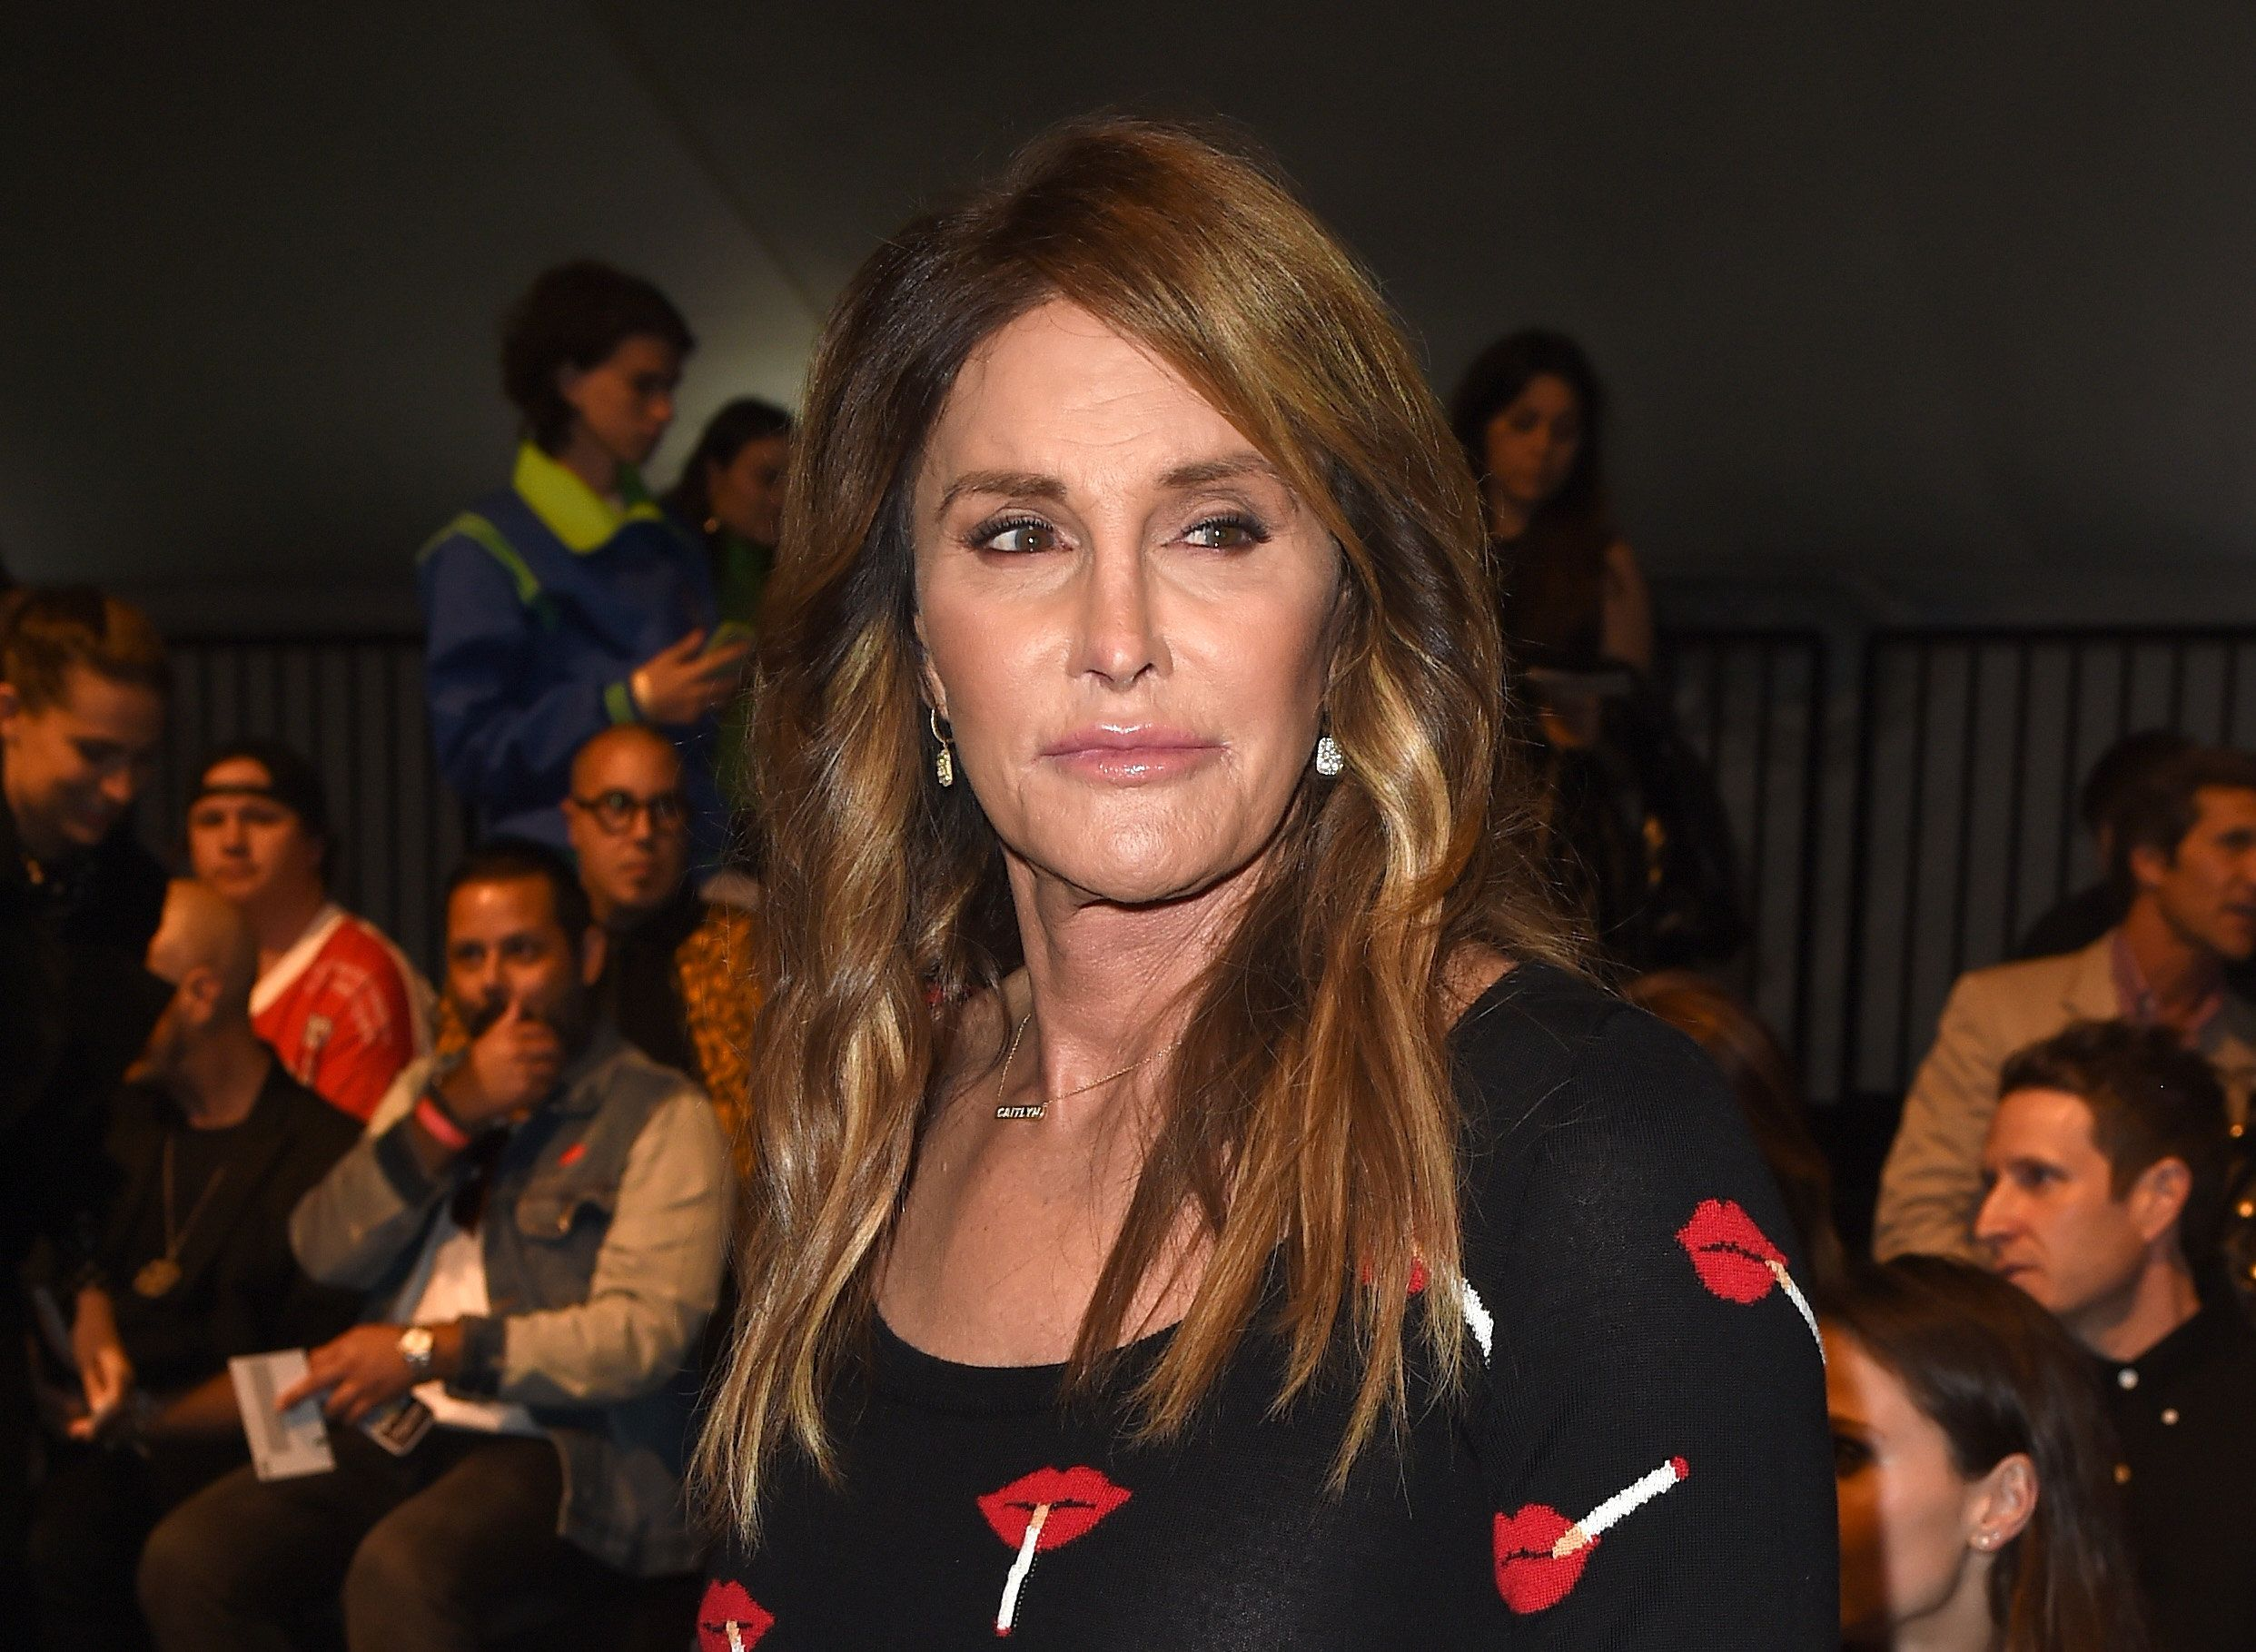 Caitlyn Jenner Praises Trump On Women, LGBT Issues In Latest WTF Of The